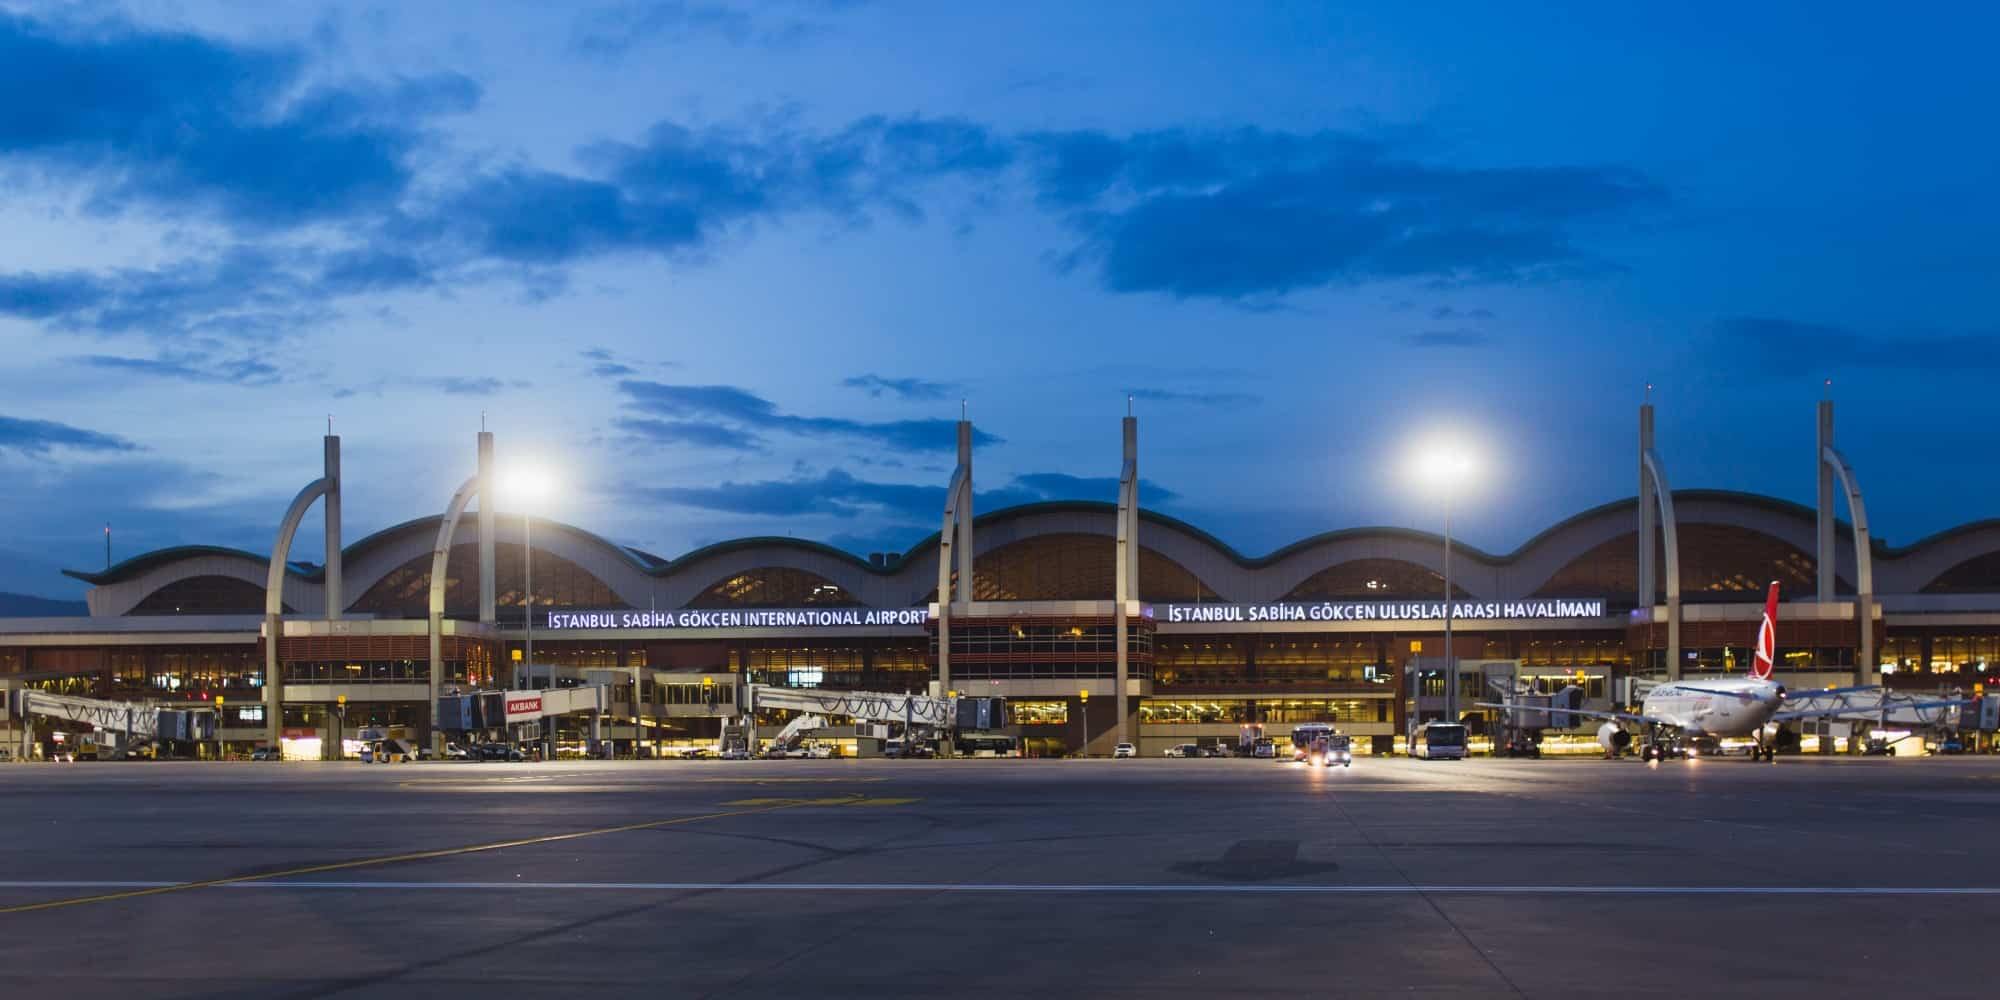 Picture of the Sabiha Gökçen (Sabiha Gokcen) International Airport in Istanbul